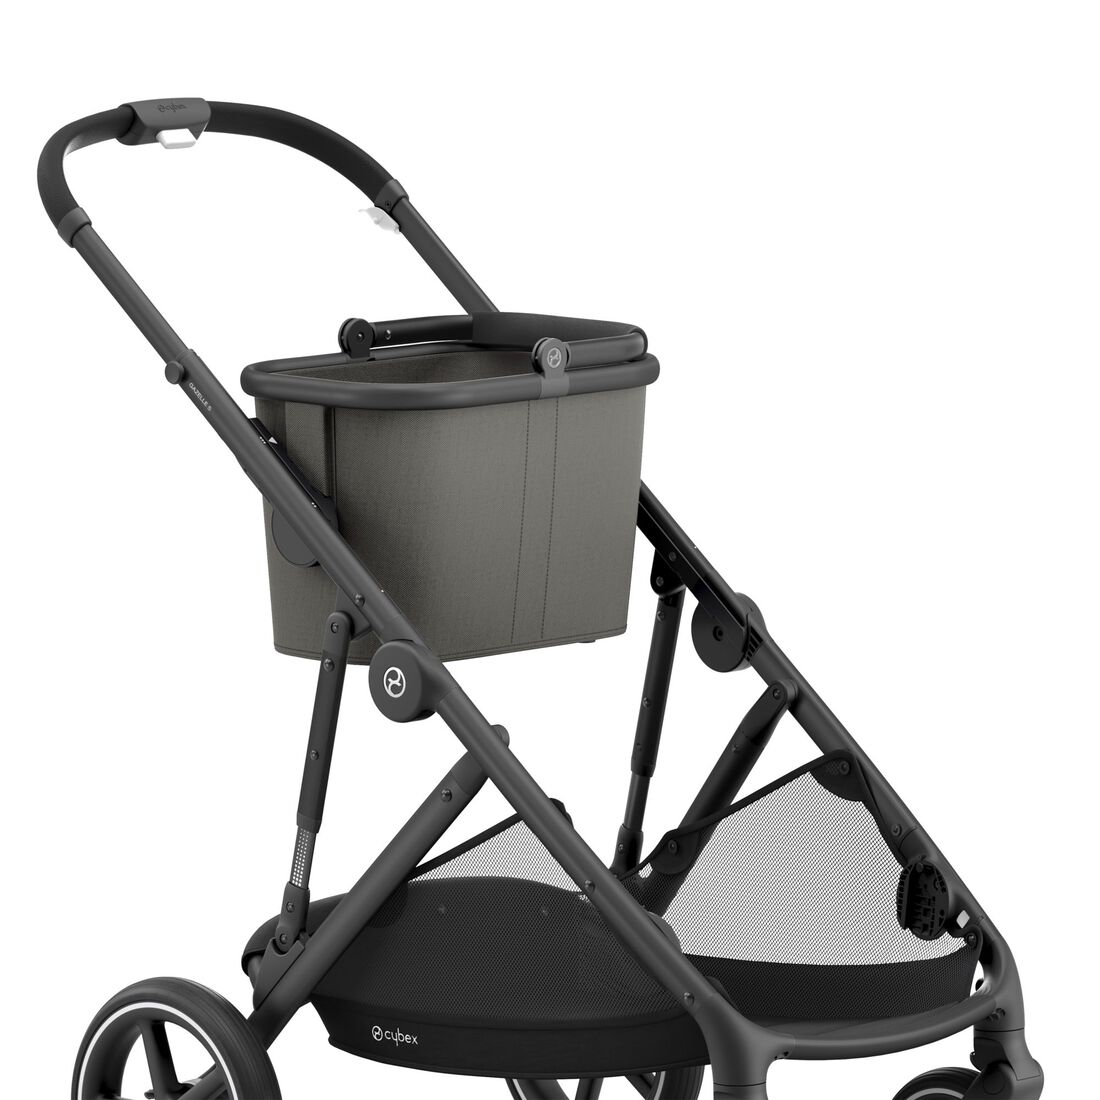 CYBEX Gazelle S - Soho Grey (Schwarzer Rahmen) in Soho Grey (Black Frame) large Bild 7